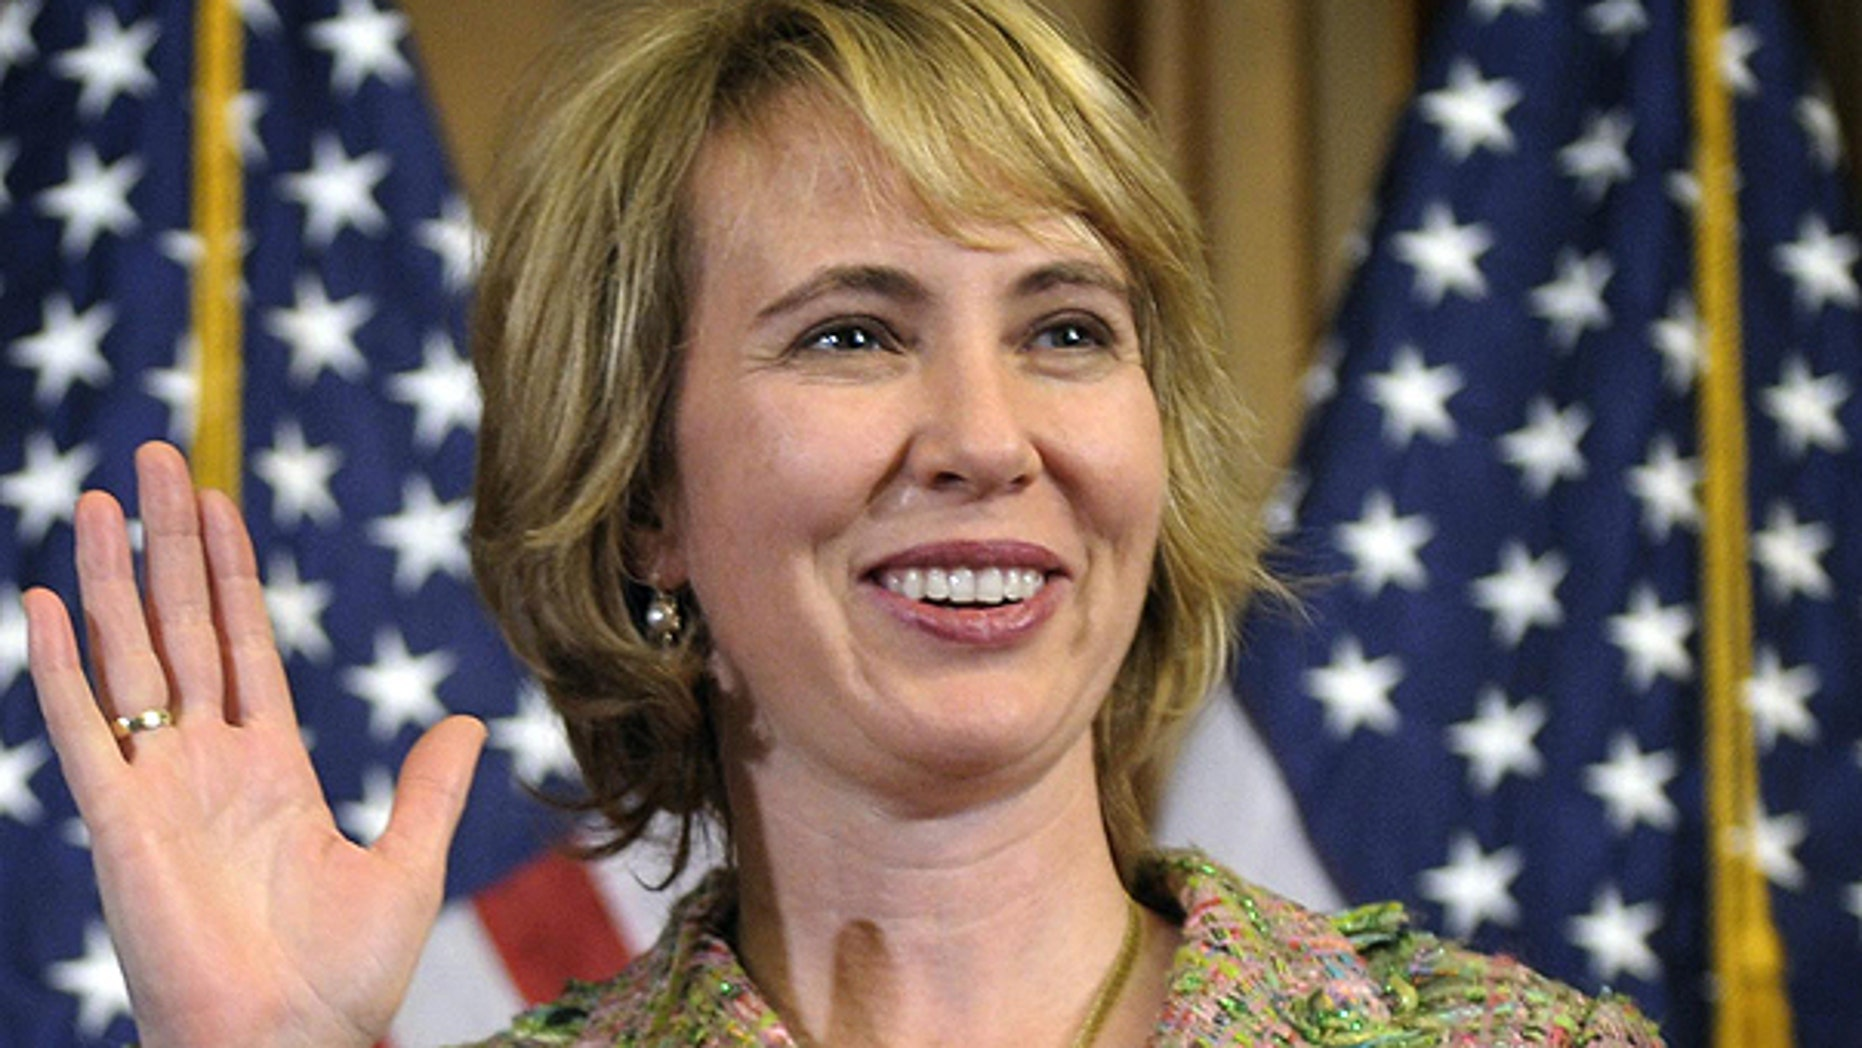 Jan. 5: Rep. Gabrielle Giffords, D-Ariz., takes part in a reenactment of her swearing-in, on Capitol Hill in Washington.